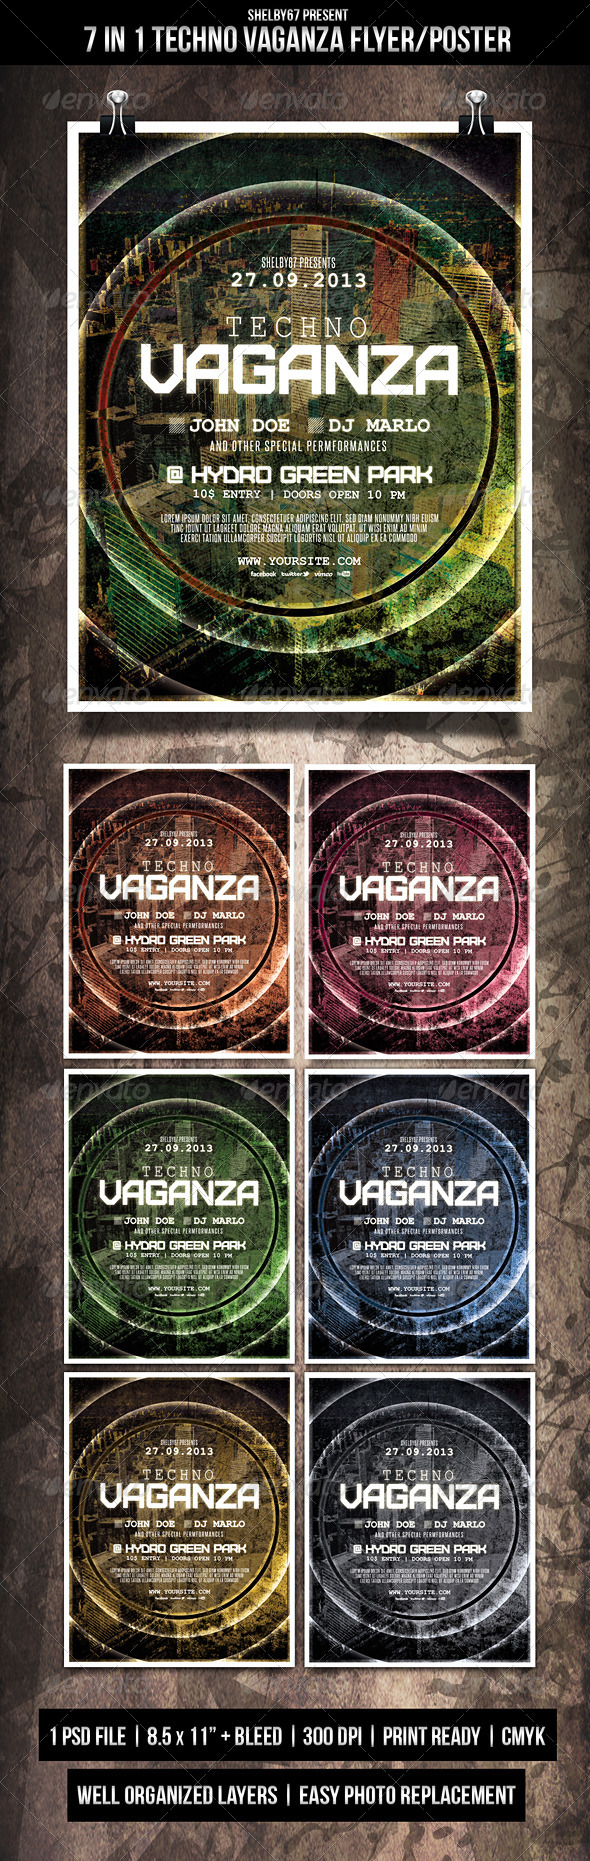 GraphicRiver Techno Vaganza Flyer Poster 5529098